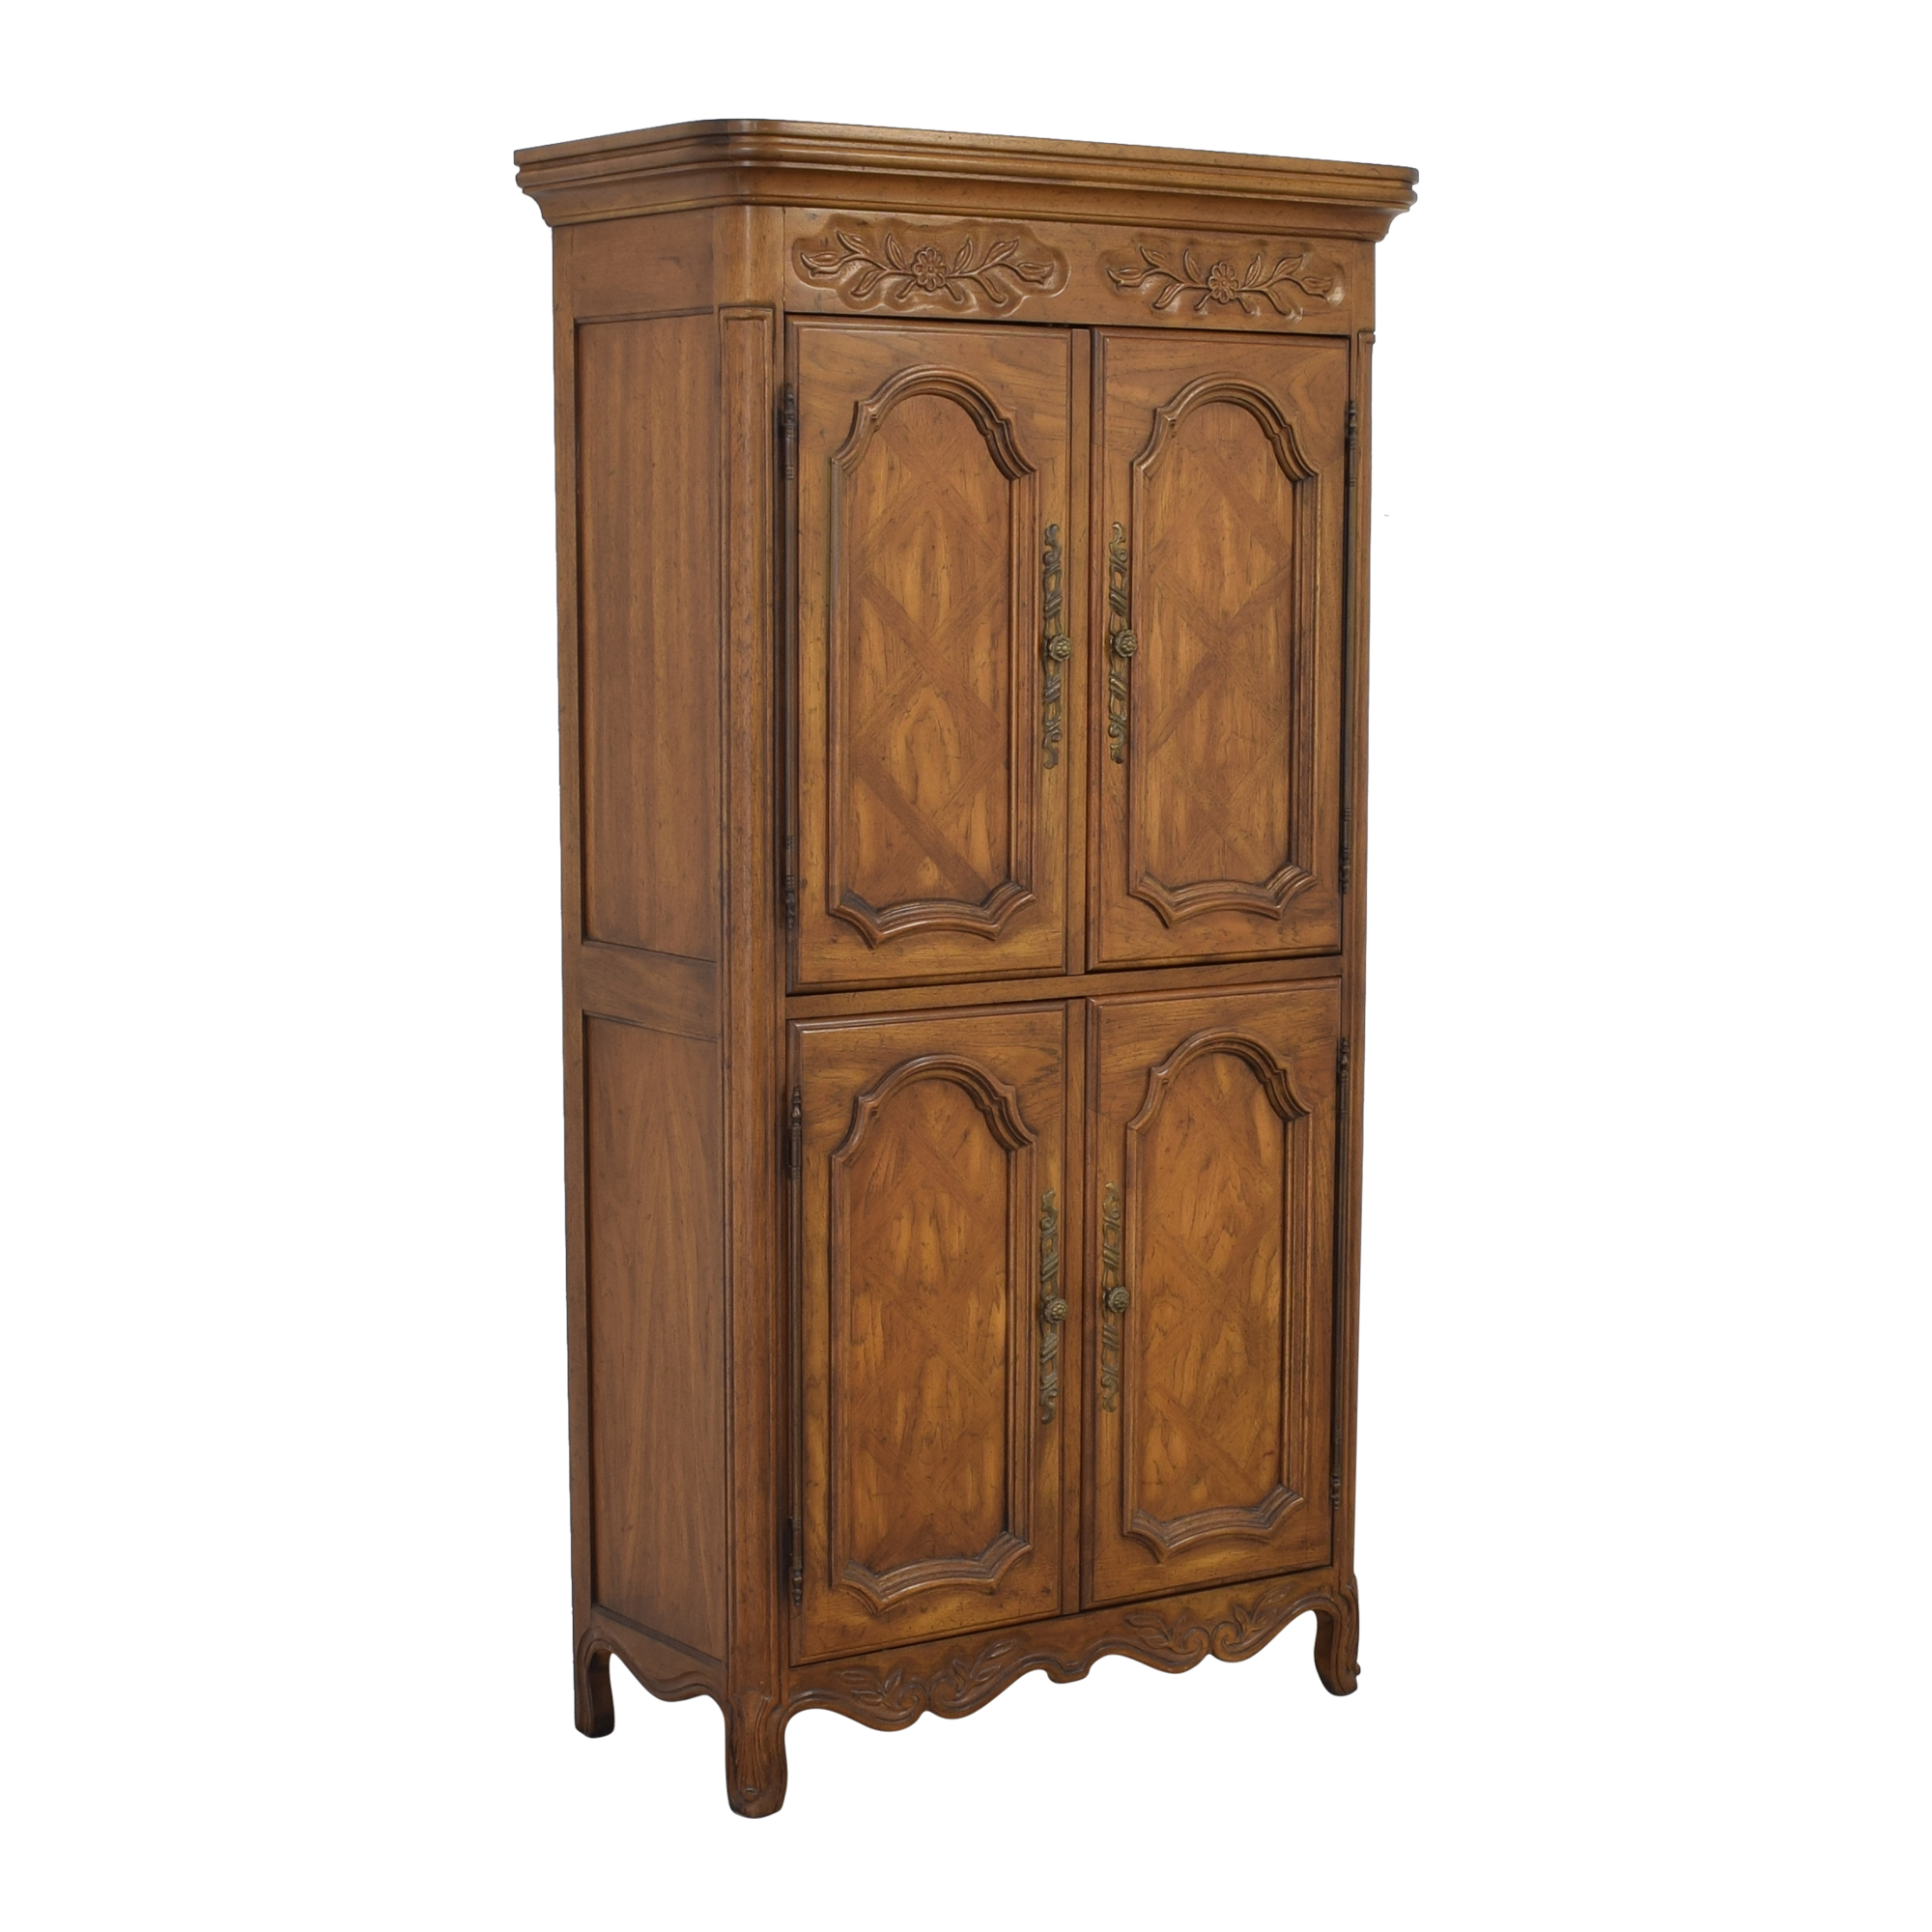 Drexel Drexel Armoire with Cabinets used